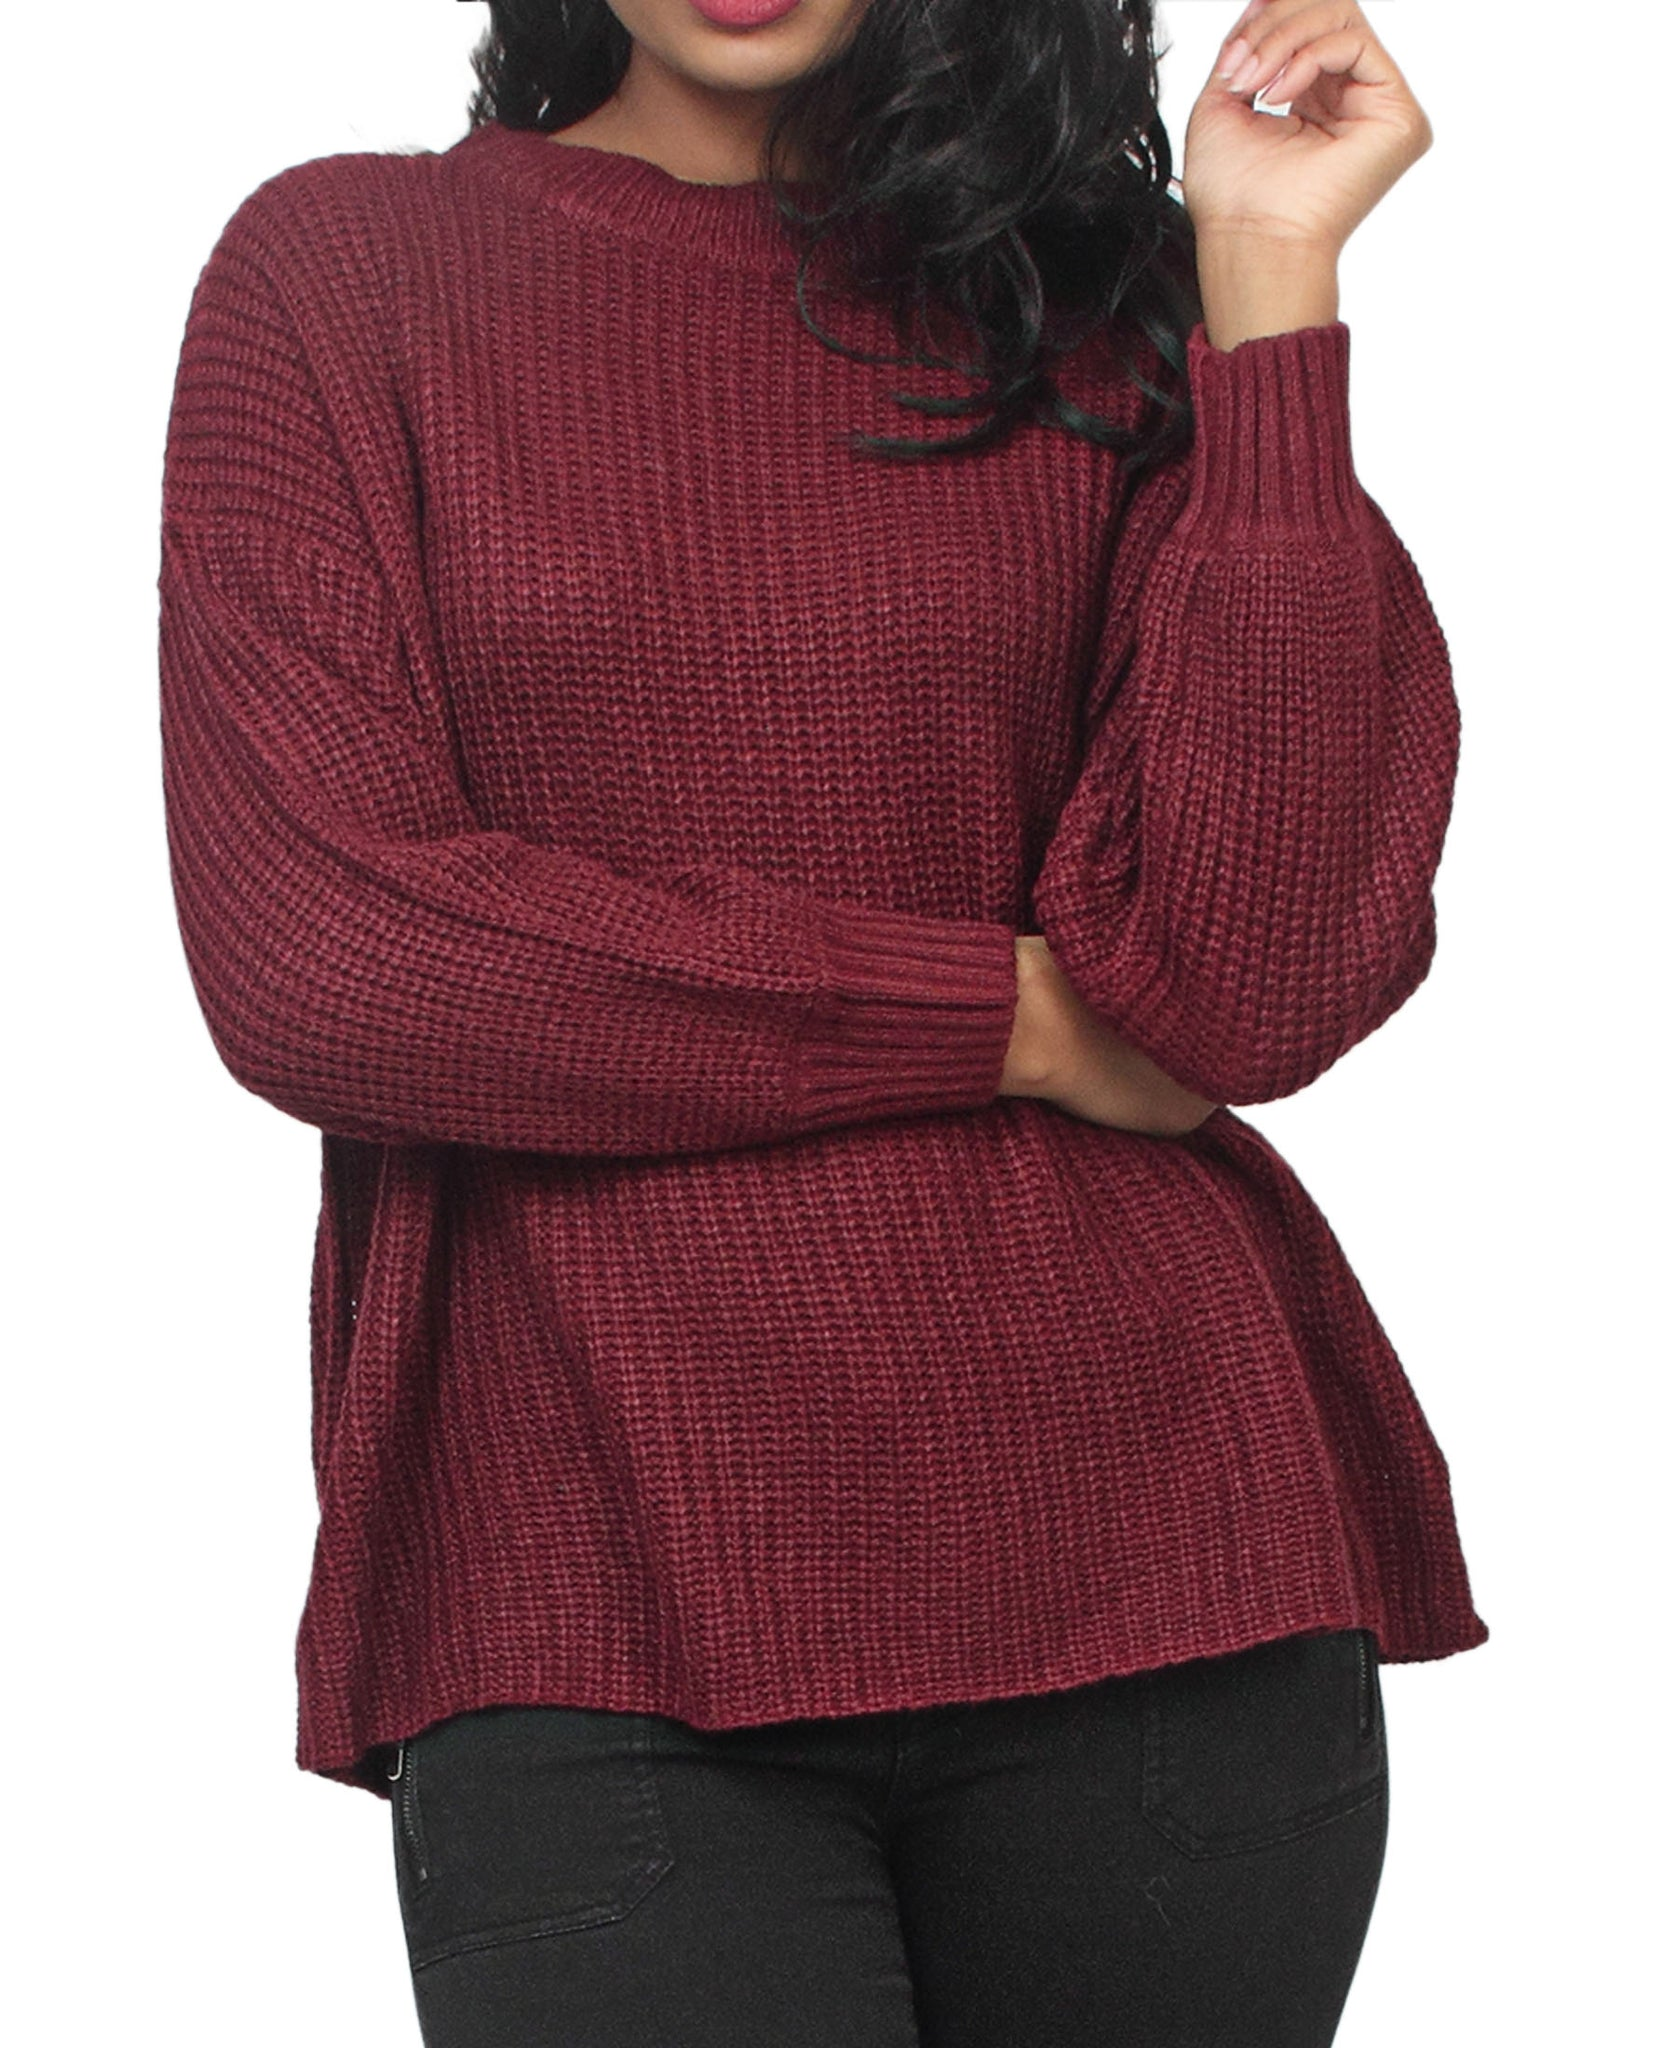 Loose Knit Sweater - Burgundy